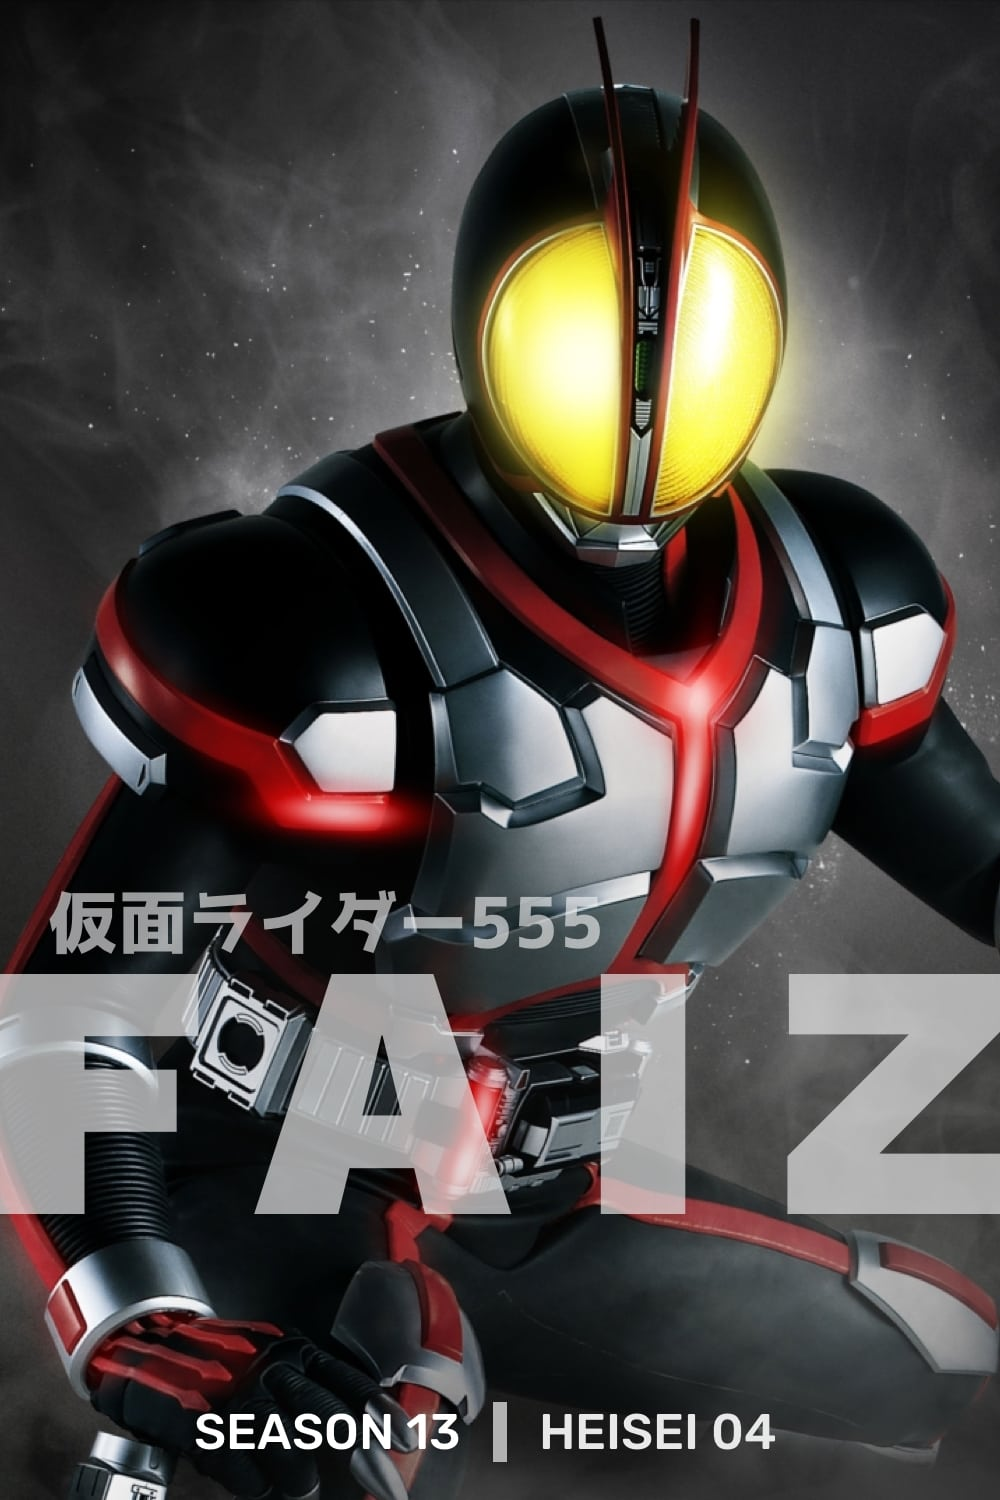 Kamen Rider - Season 21 Episode 2 : Greed, Ice Candy, Present Season 13